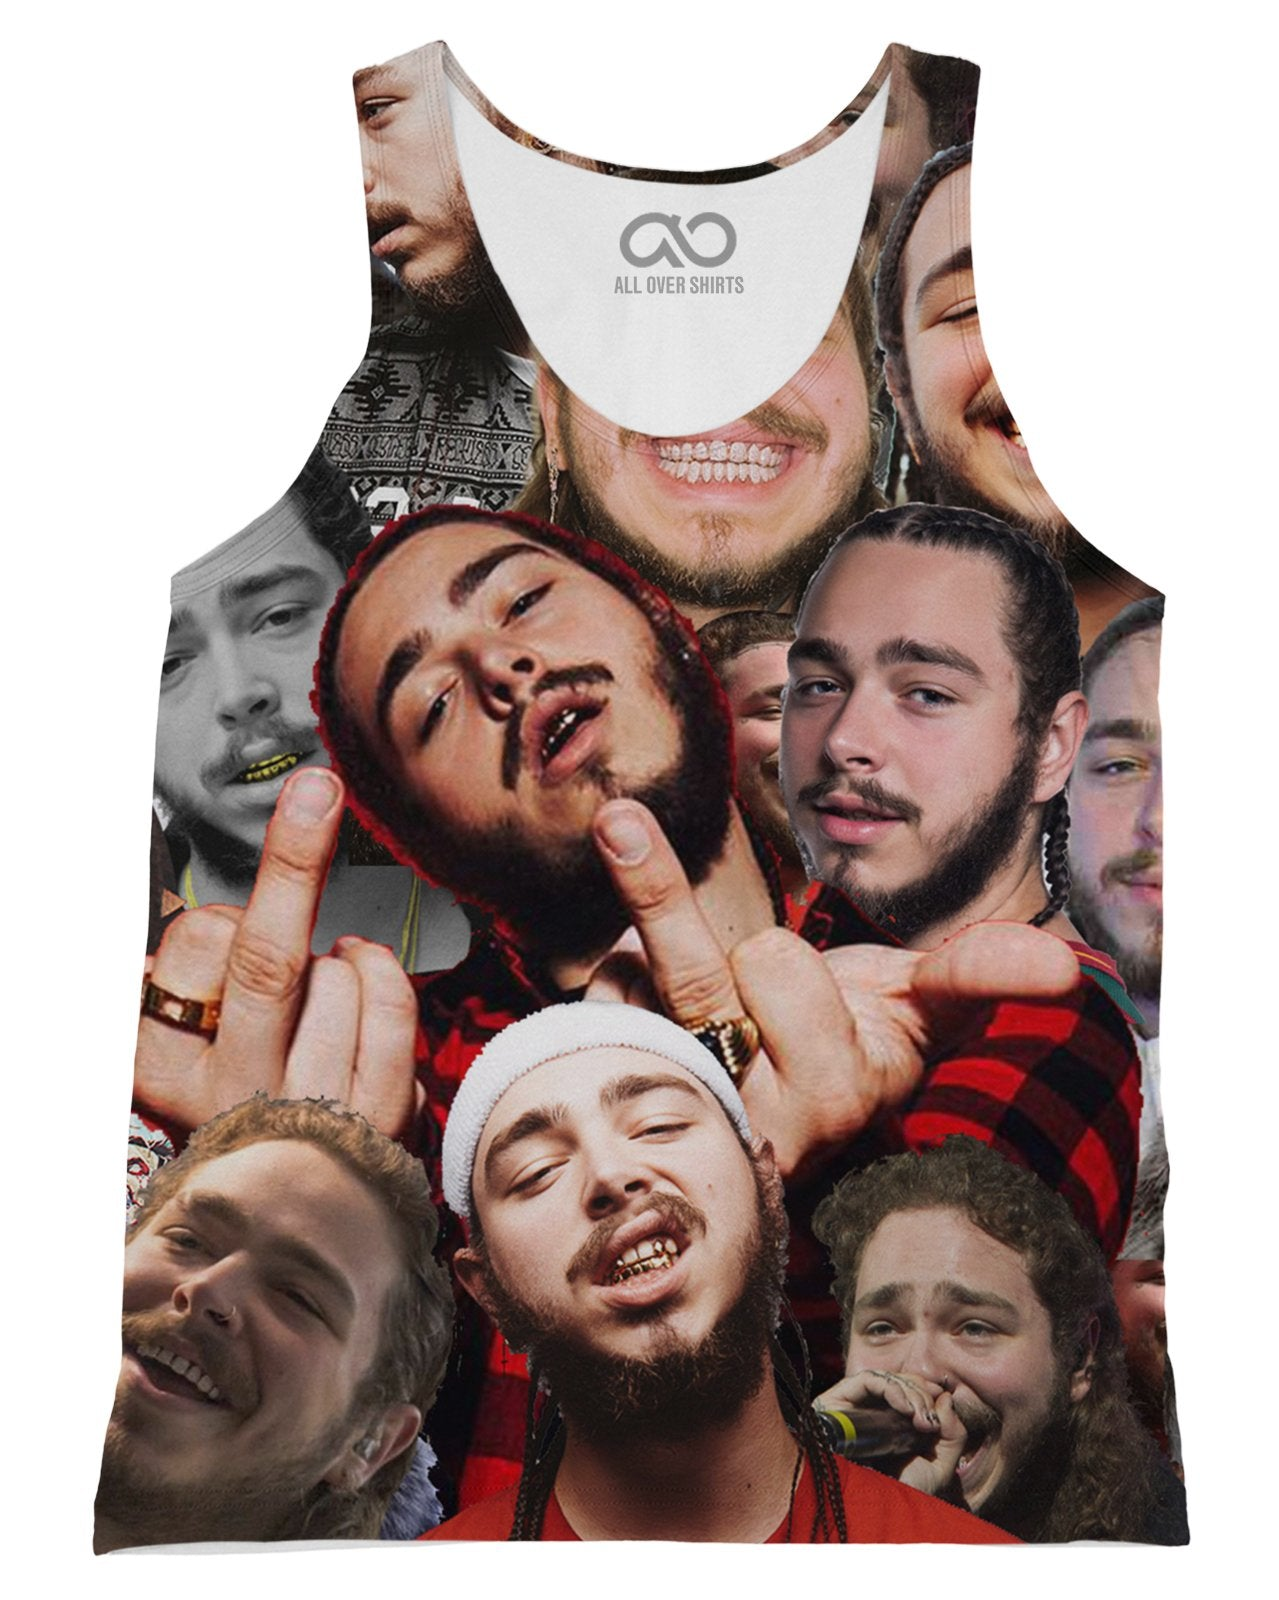 Post Malone printed all over in HD on premium fabric. Handmade in California.